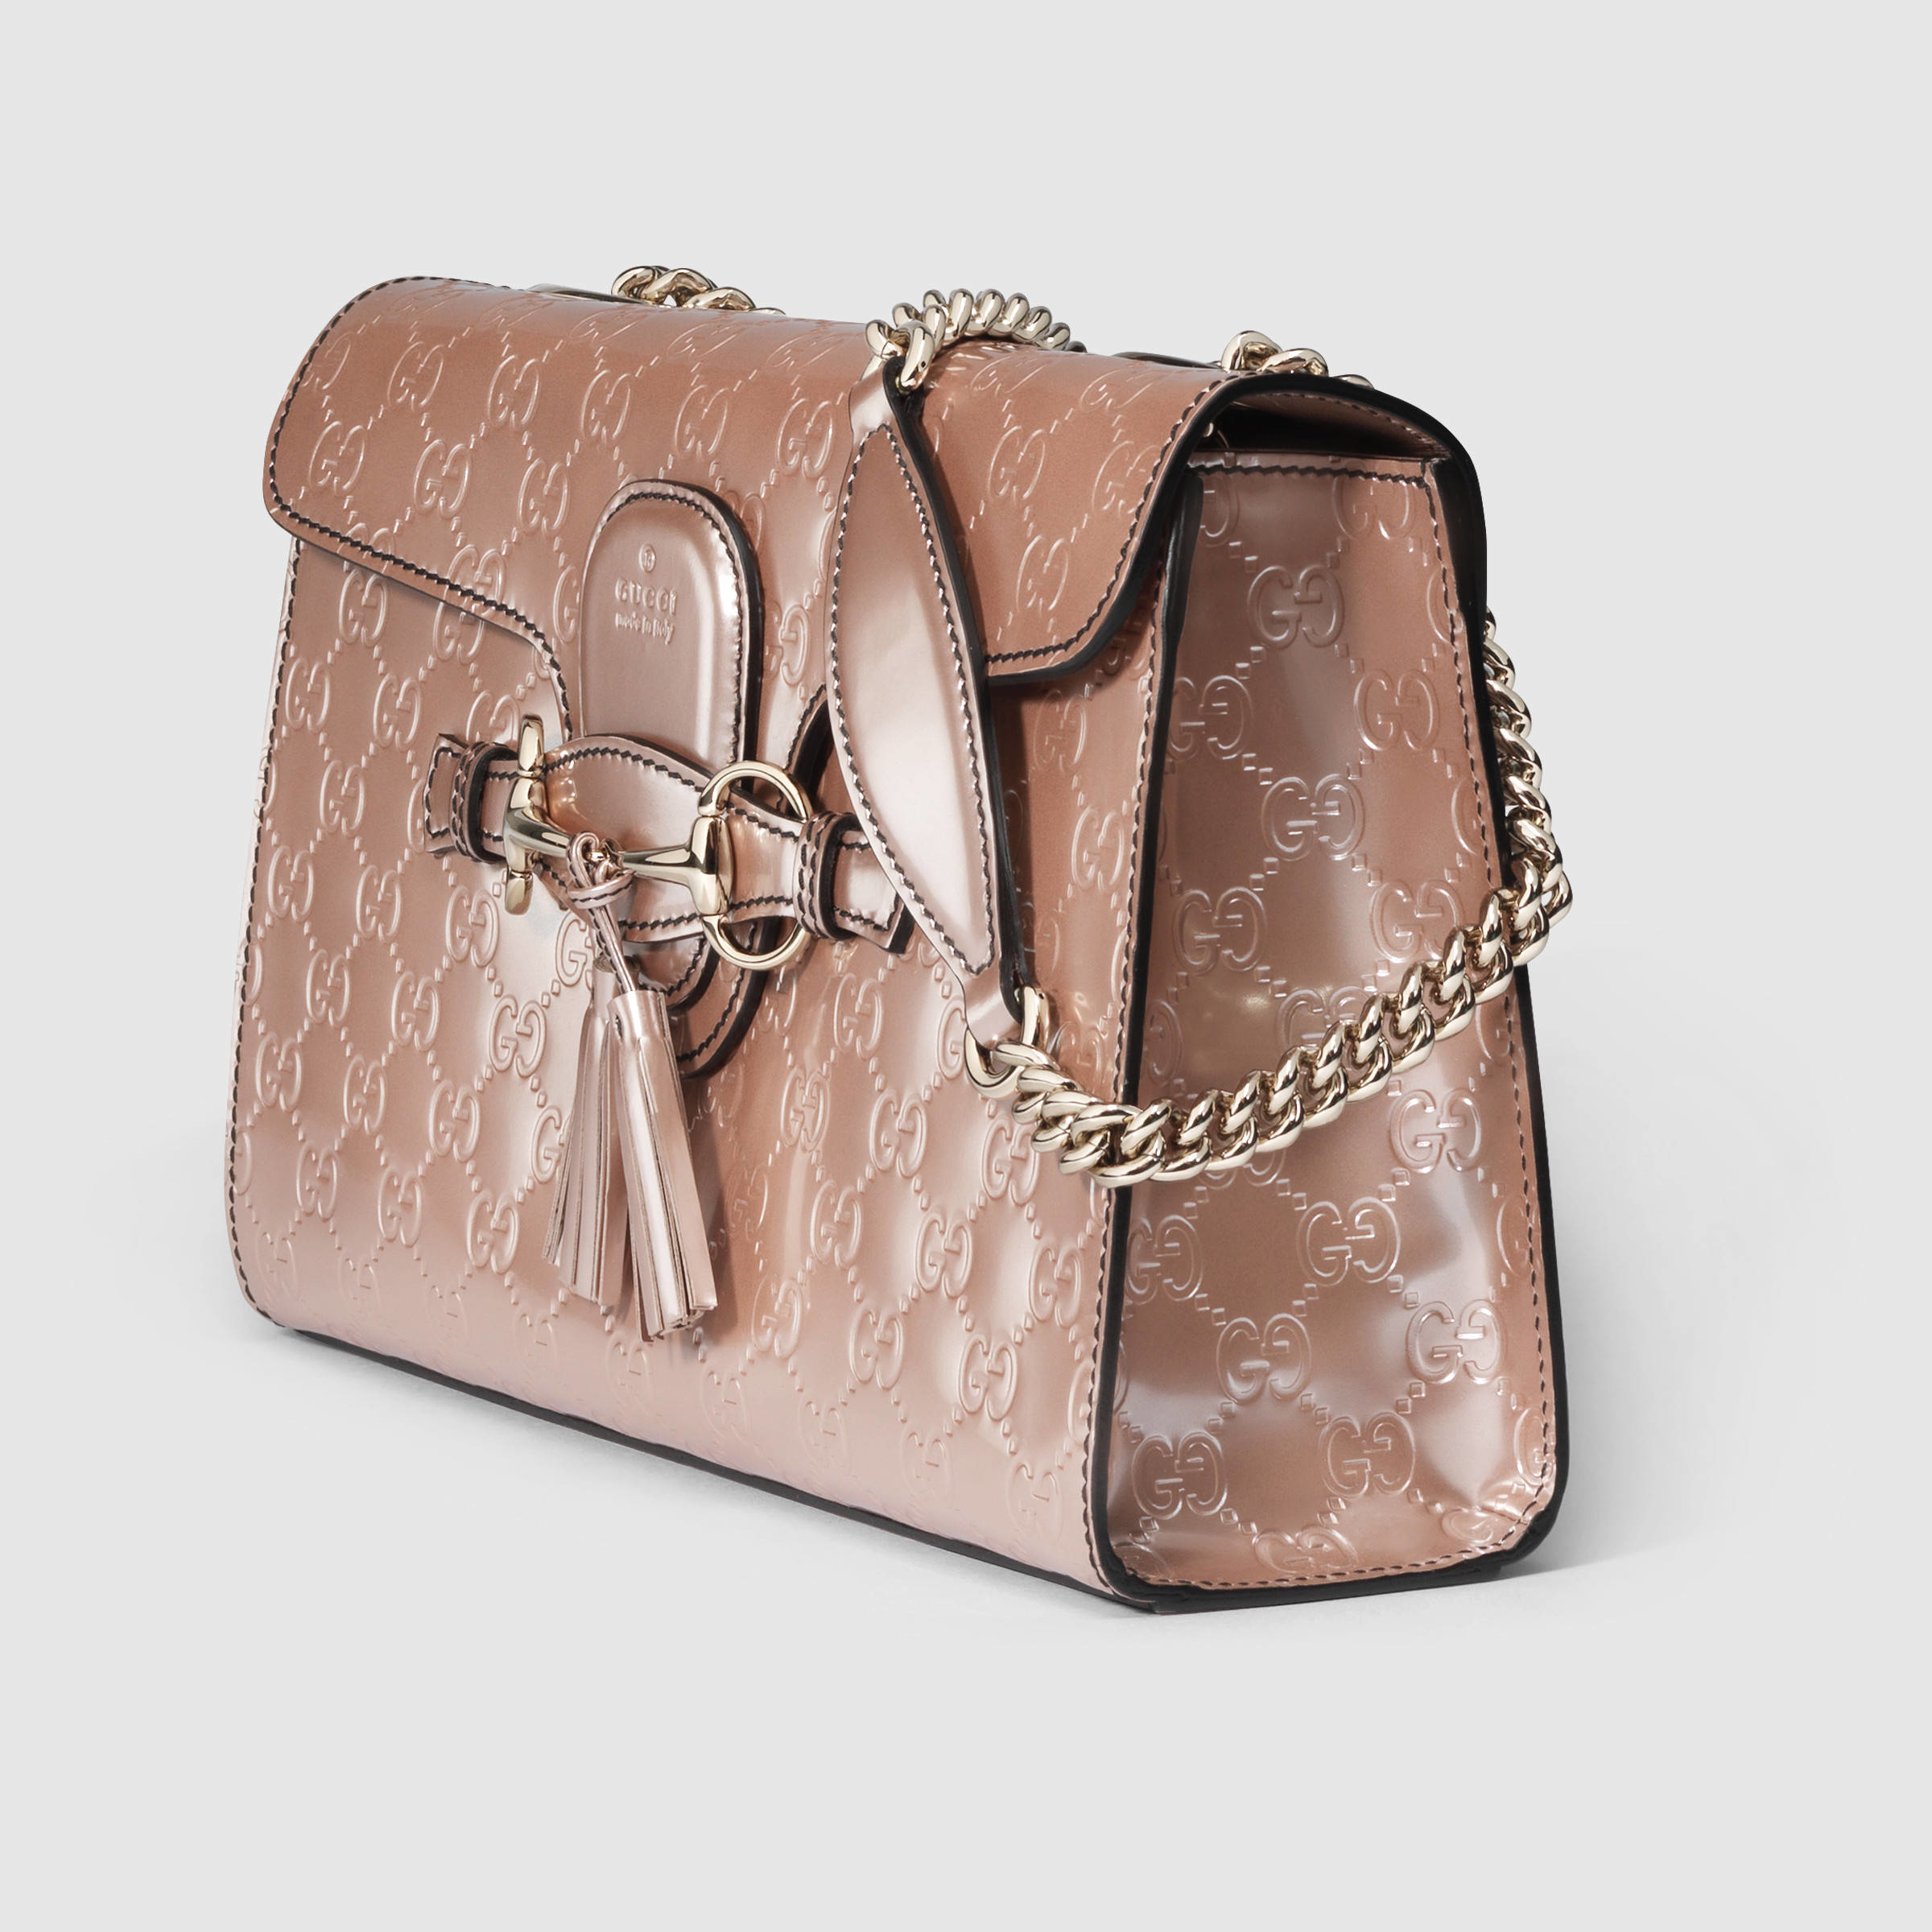 Lyst - Gucci Emily Guccissima Chain Shoulder Bag in Natural